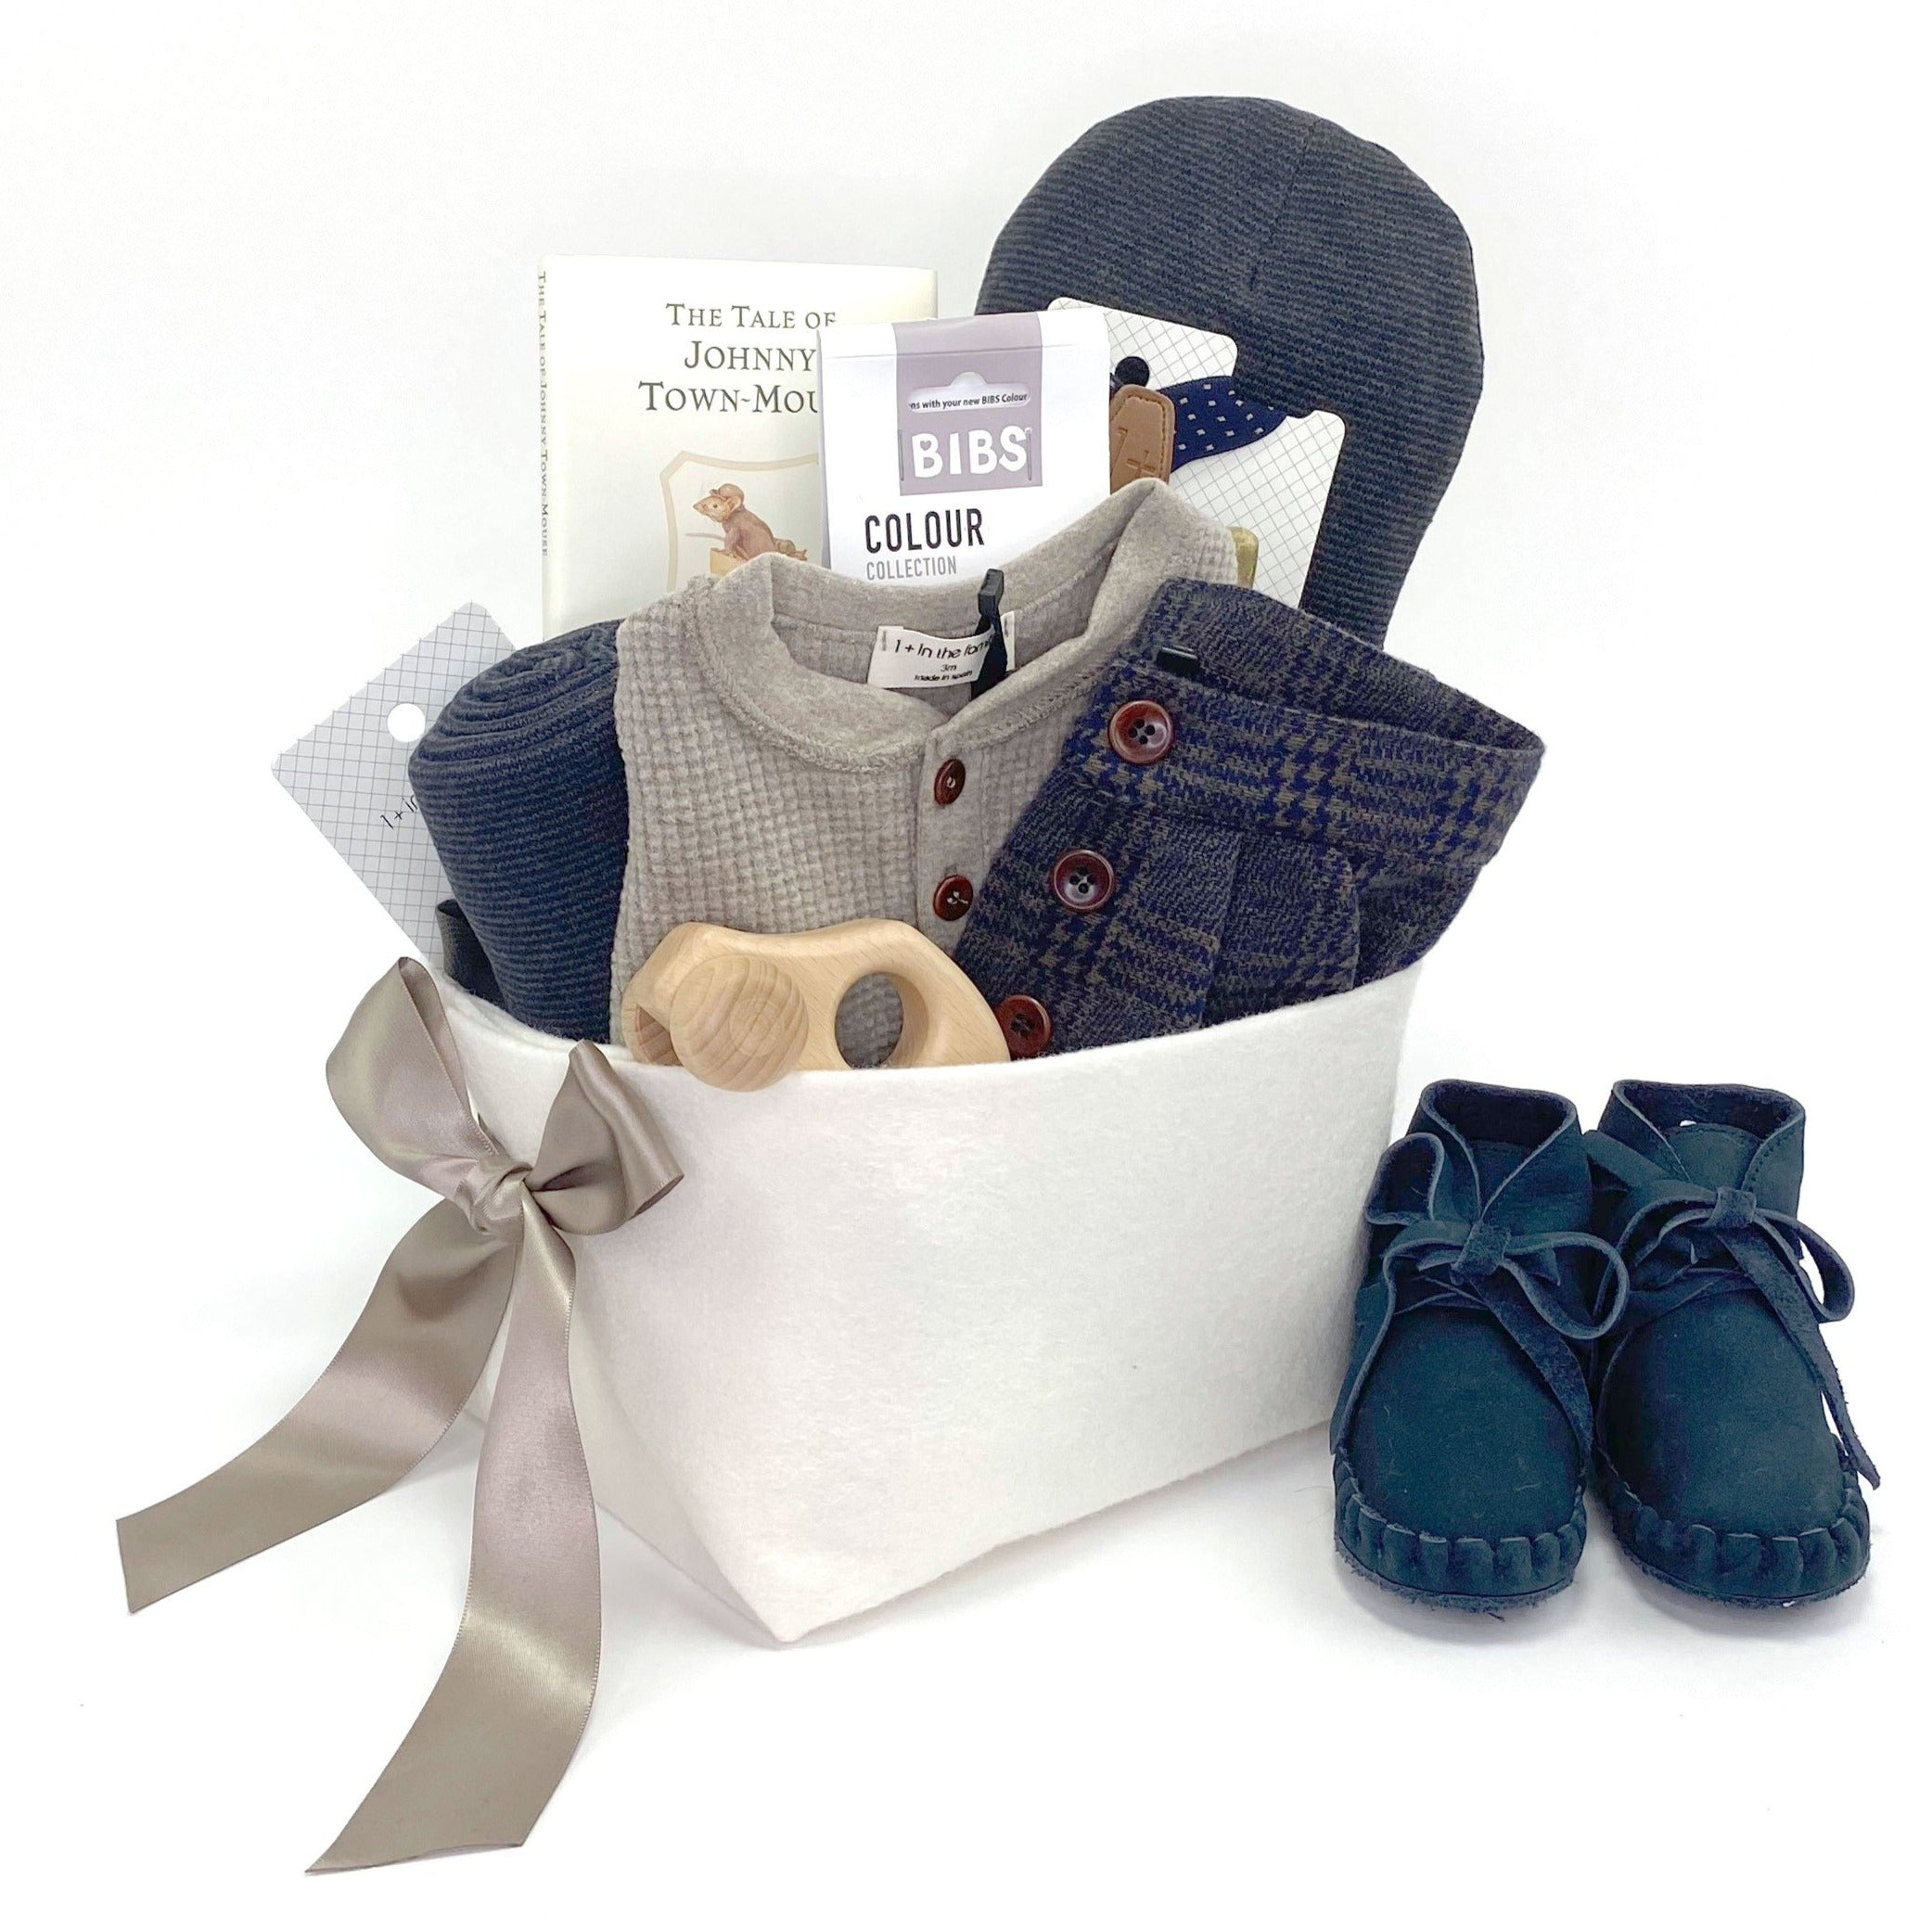 Luxury Baby Boy Gift Basket at Bonjour Baby Baskets, best Corporate Baby Gift